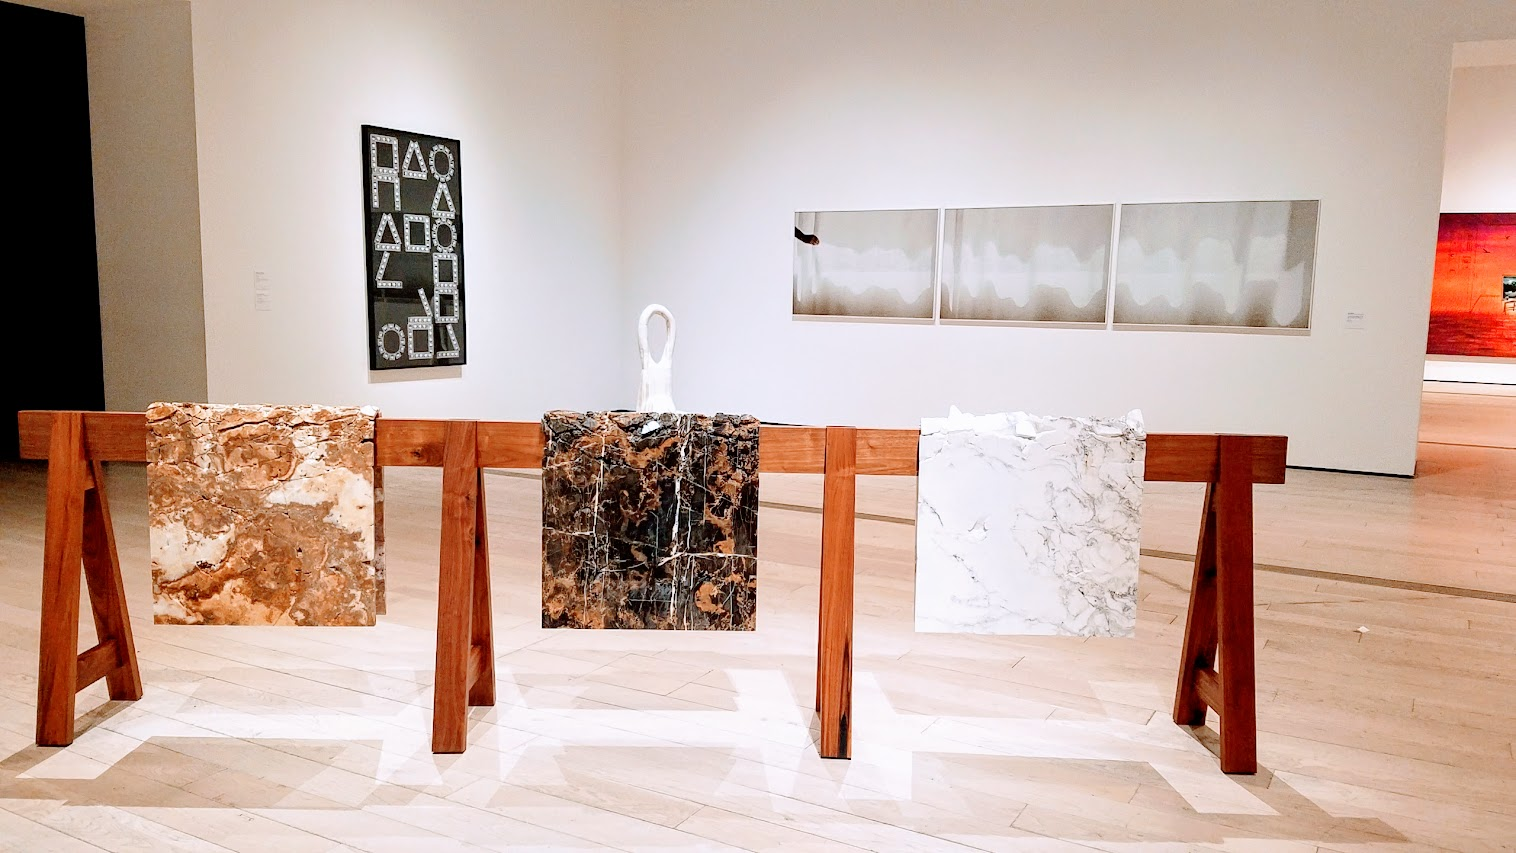 Draped Marble (Carrara, St. Laurant, Brown Onyx) by Analia Saban. Marble mounted on steel on wooden sawhorse. Displayed at Broad Contemporary Art Museum at LACMA